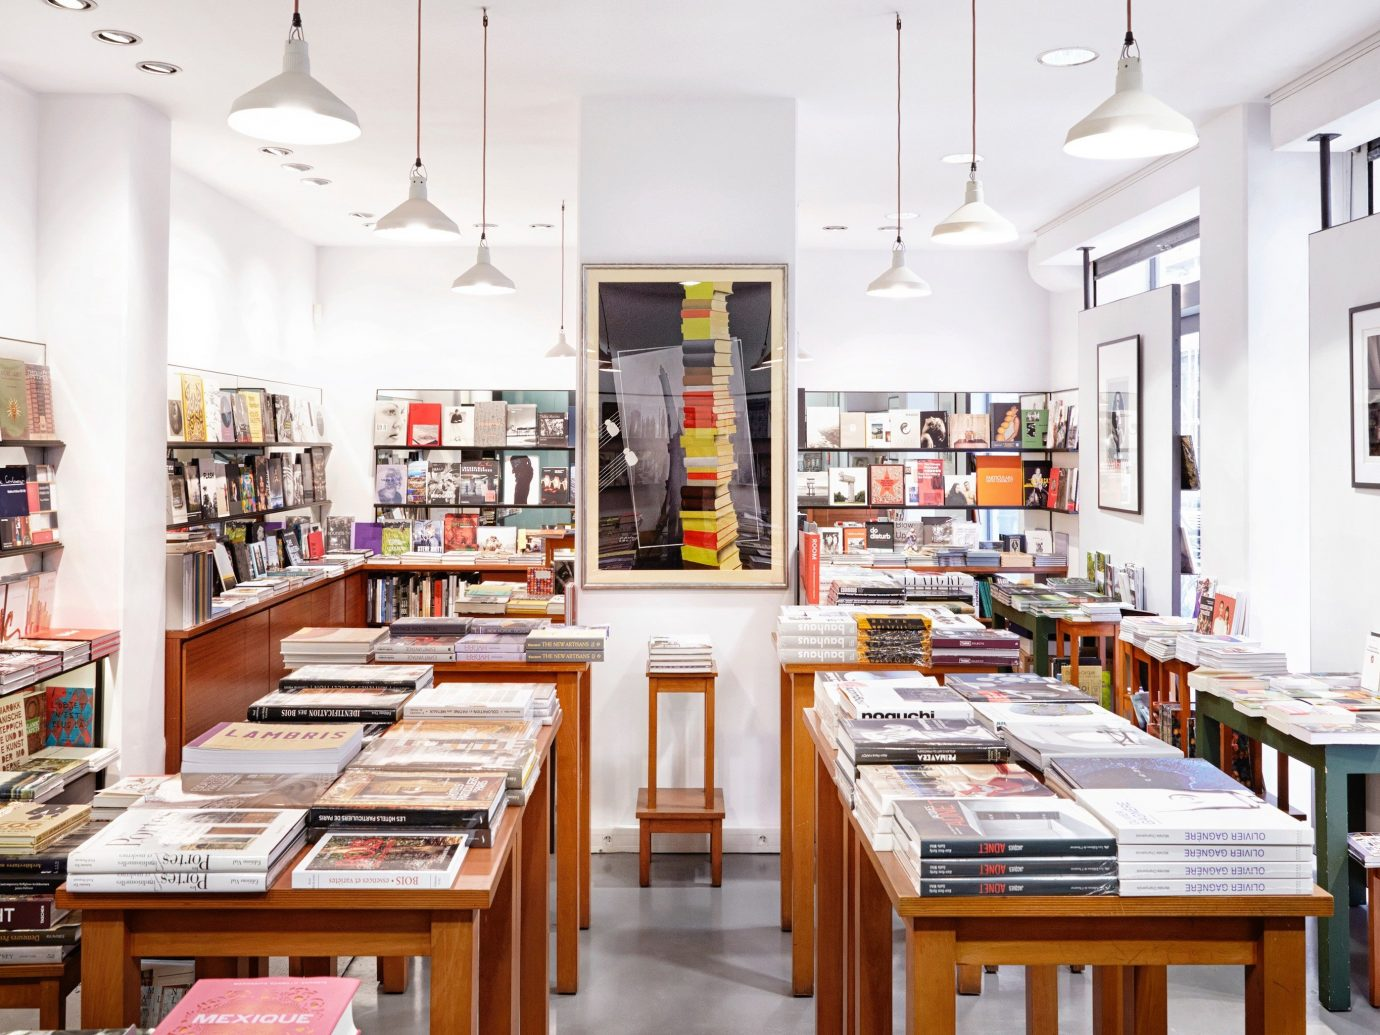 France Paris Trip Ideas indoor table floor book shelf bookselling room building retail library interior design Design real estate wood furniture cluttered